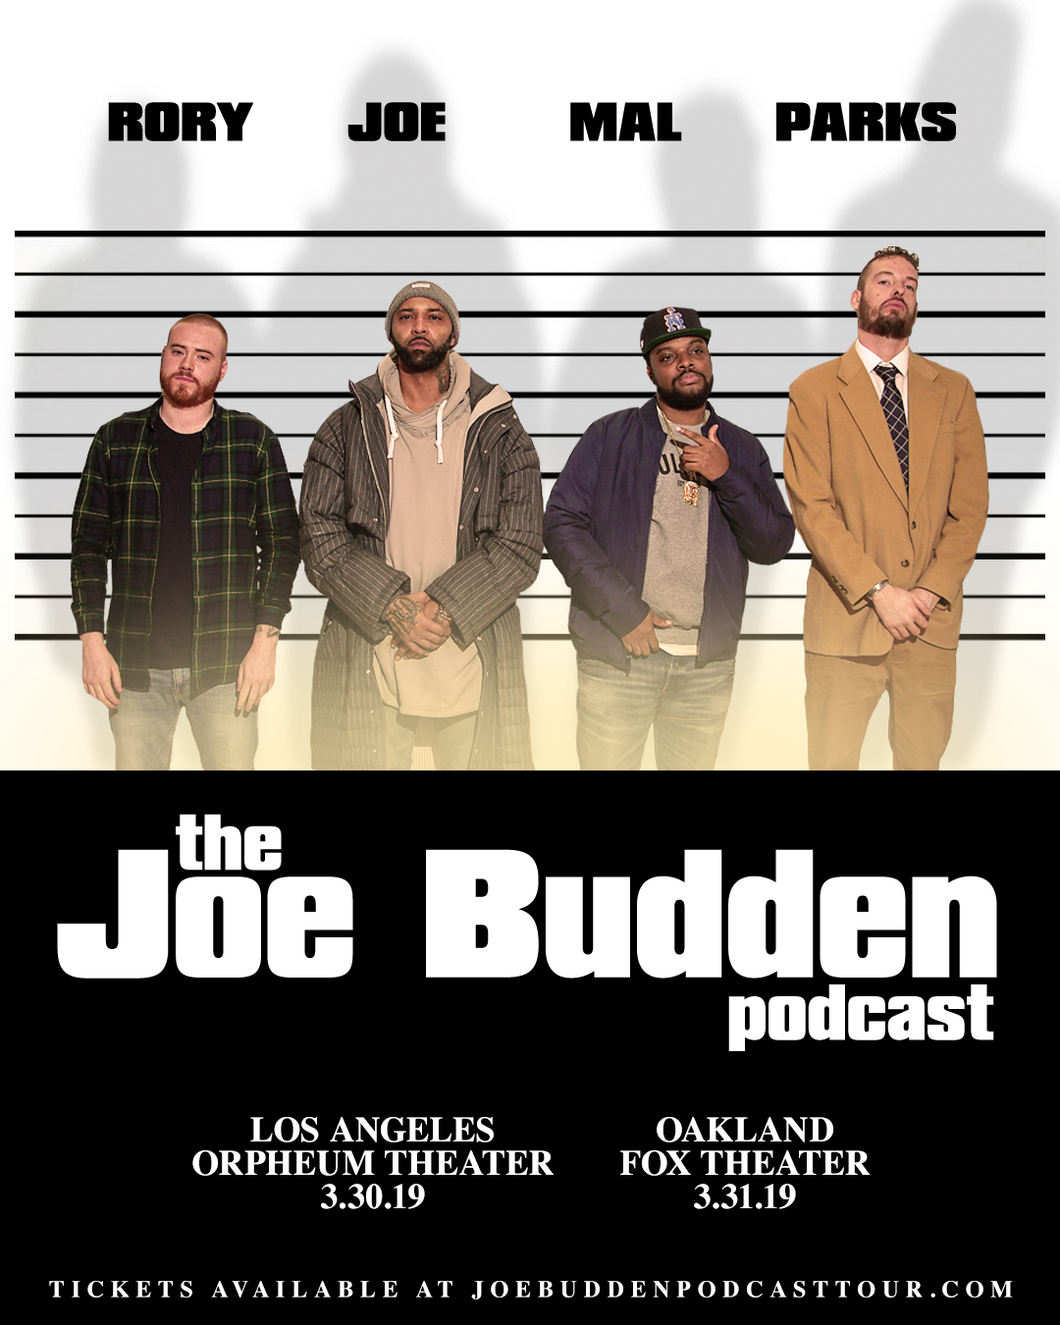 03/30/2019 - Los Angeles, CA - Orpheum Theater - Joe Budden VIP Experience Package